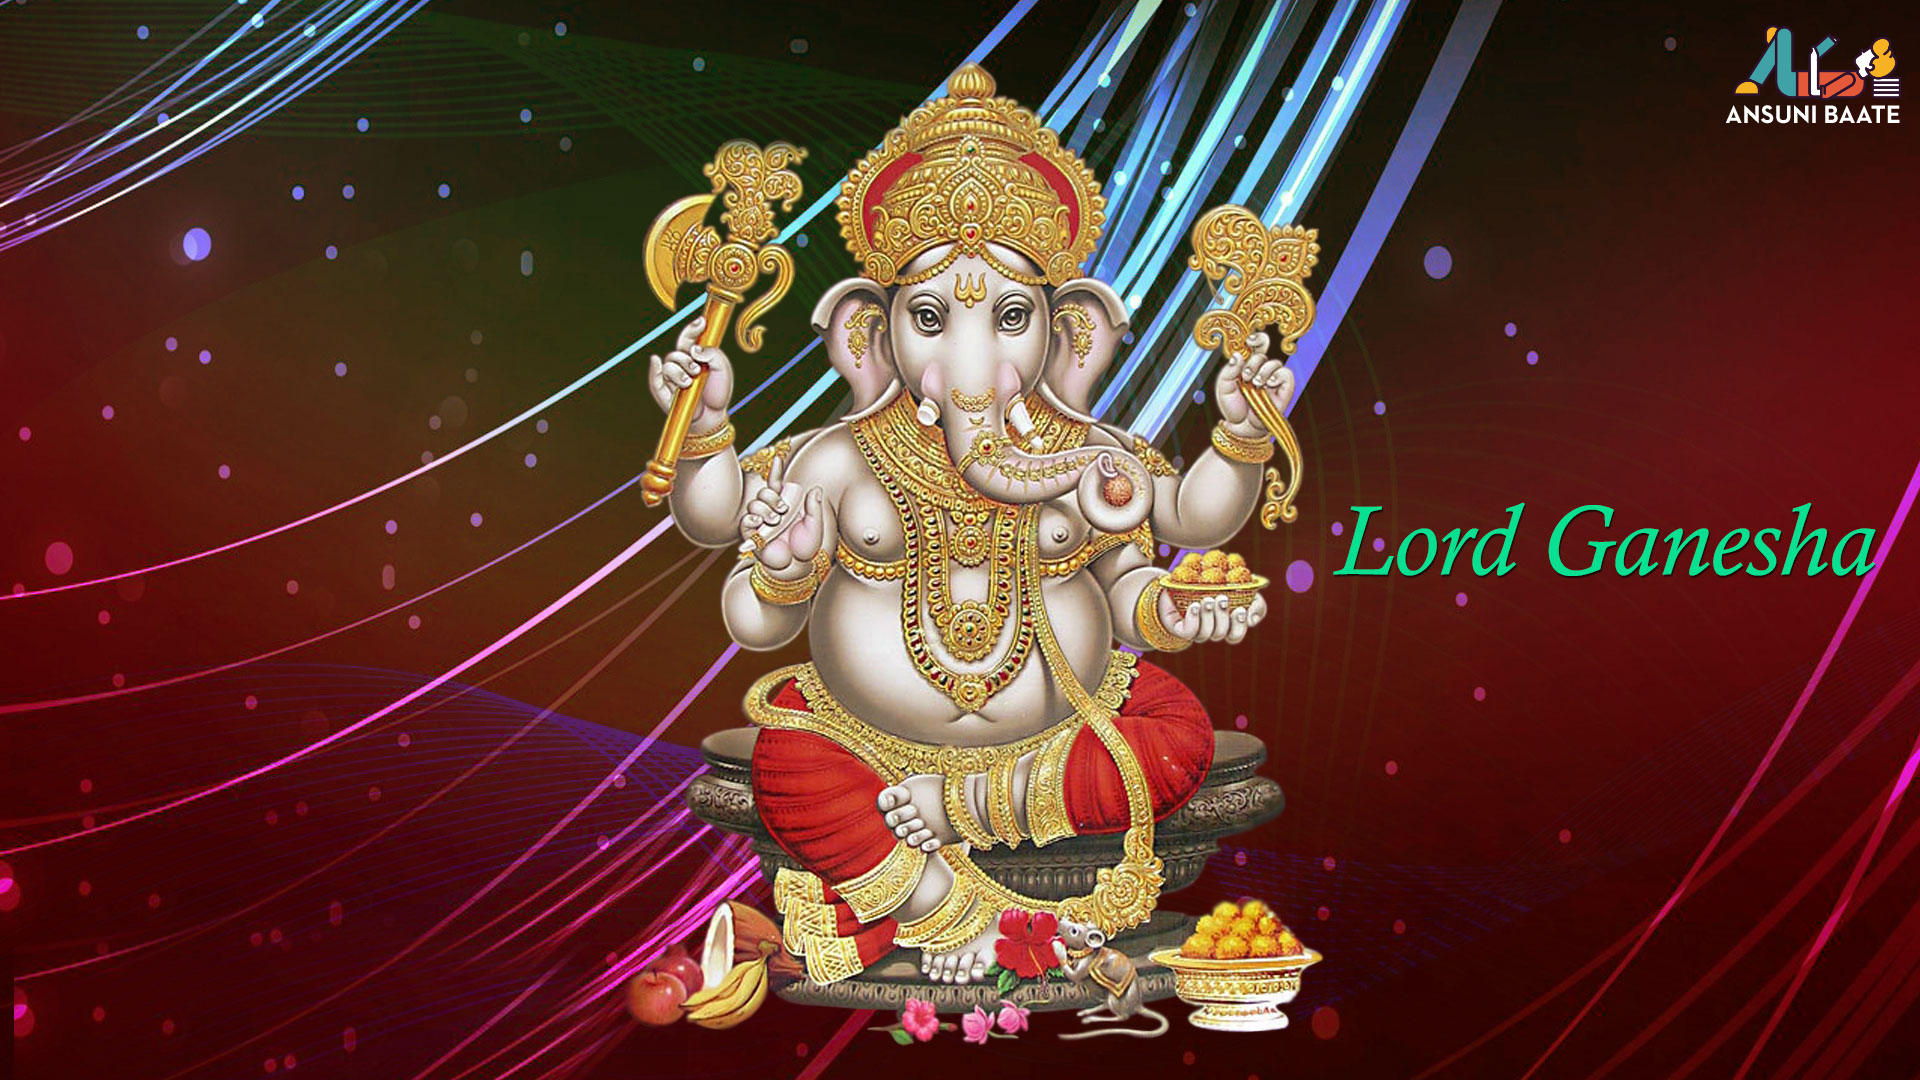 Lord Ganesh Photos Hd Ganesh Gallery Free Download Ansunibaate